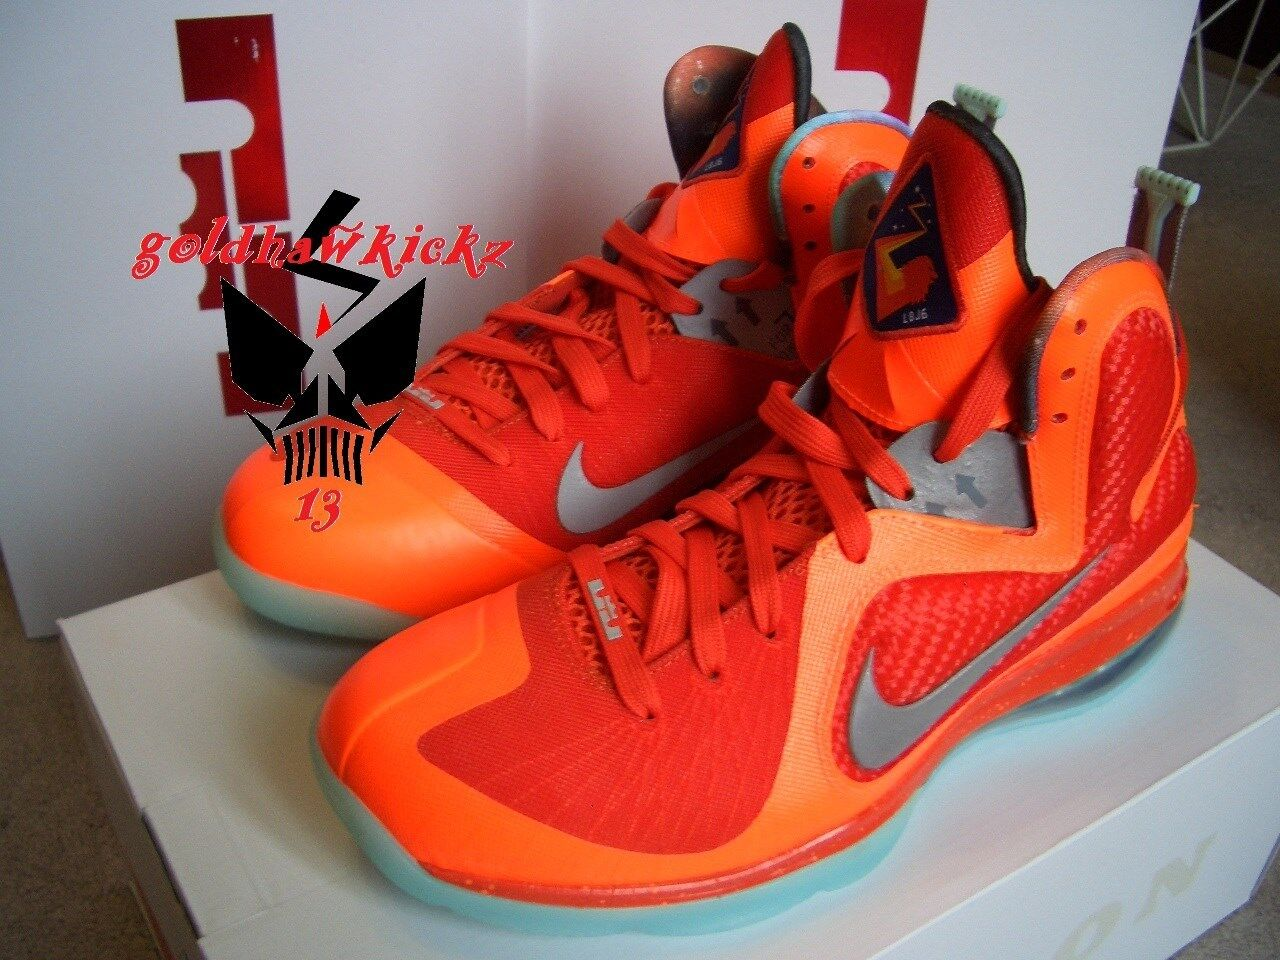 2018 NIKE lebron IX 9 nba all star game ASG big bang GITD bhm QS orange New shoes for men and women, limited time discount